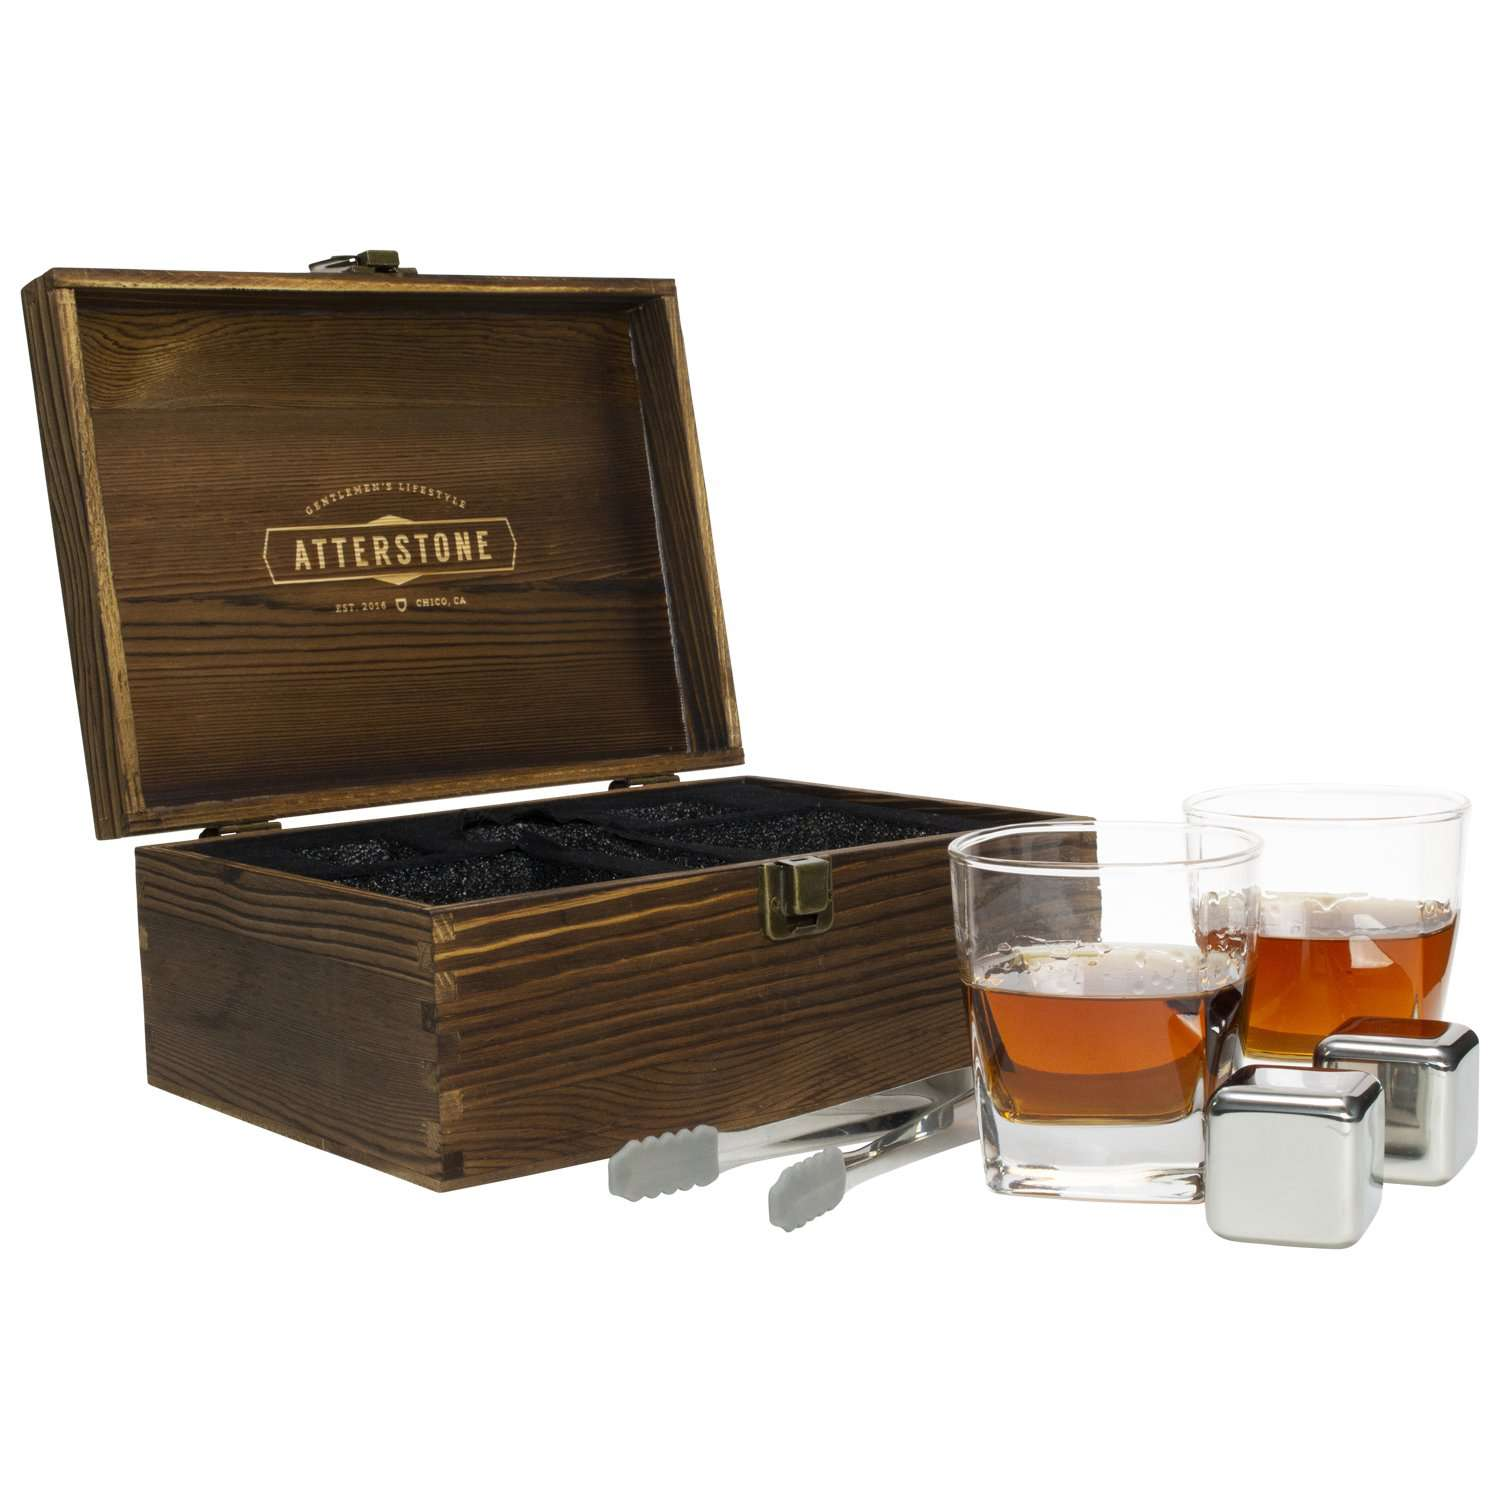 A wooden box beside a pair of tongs, two whiskey glasses, and two metal whiskey stones.